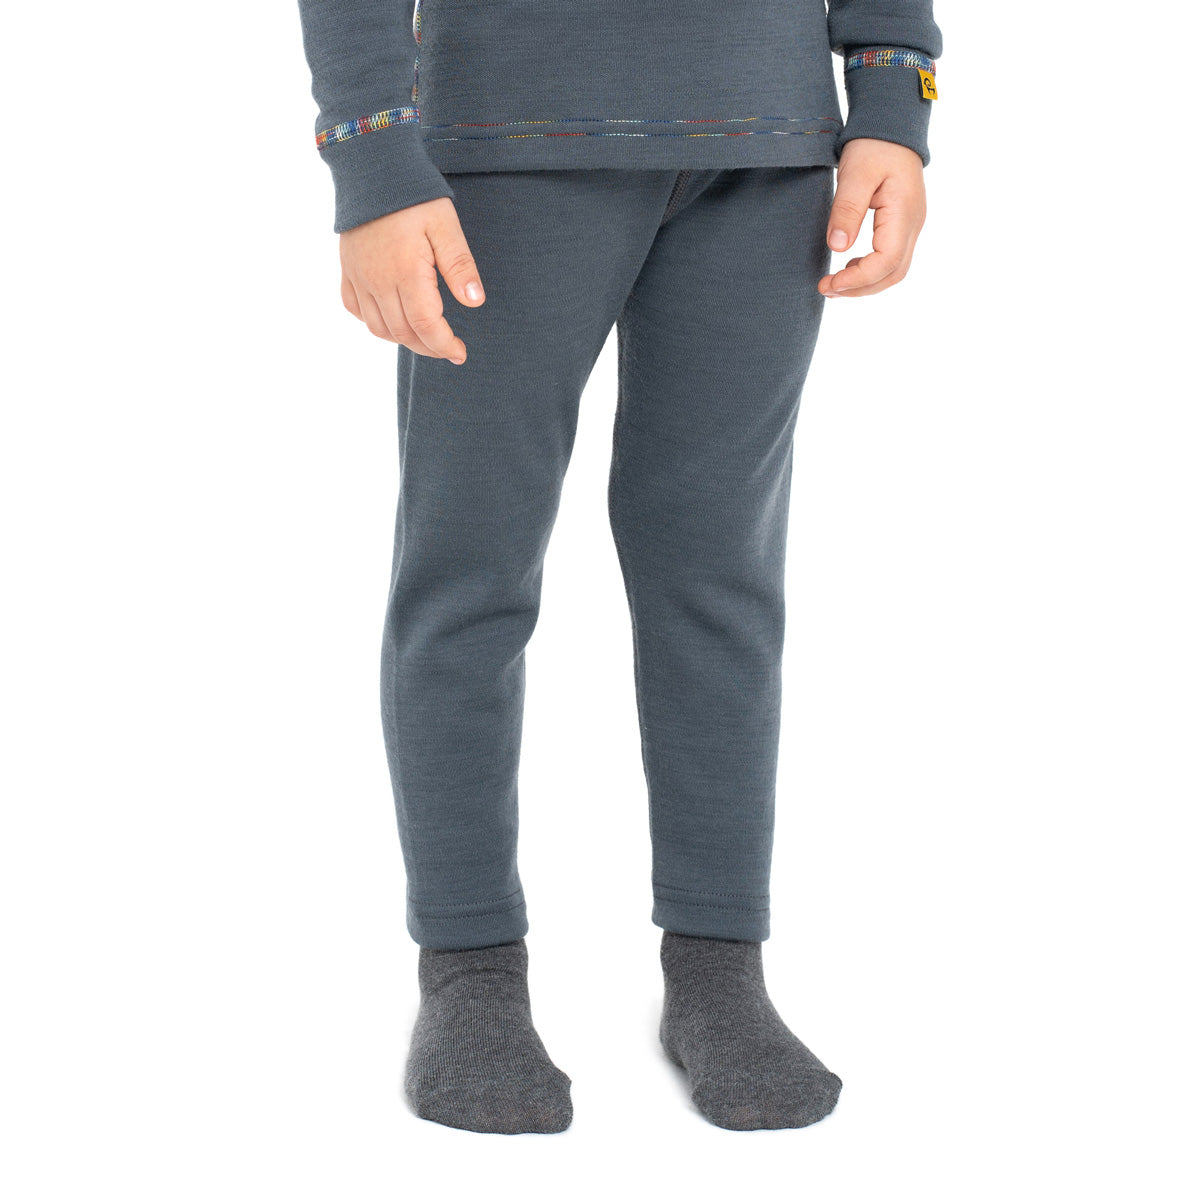 Kids' Merino 250 Pants Perfect Grey